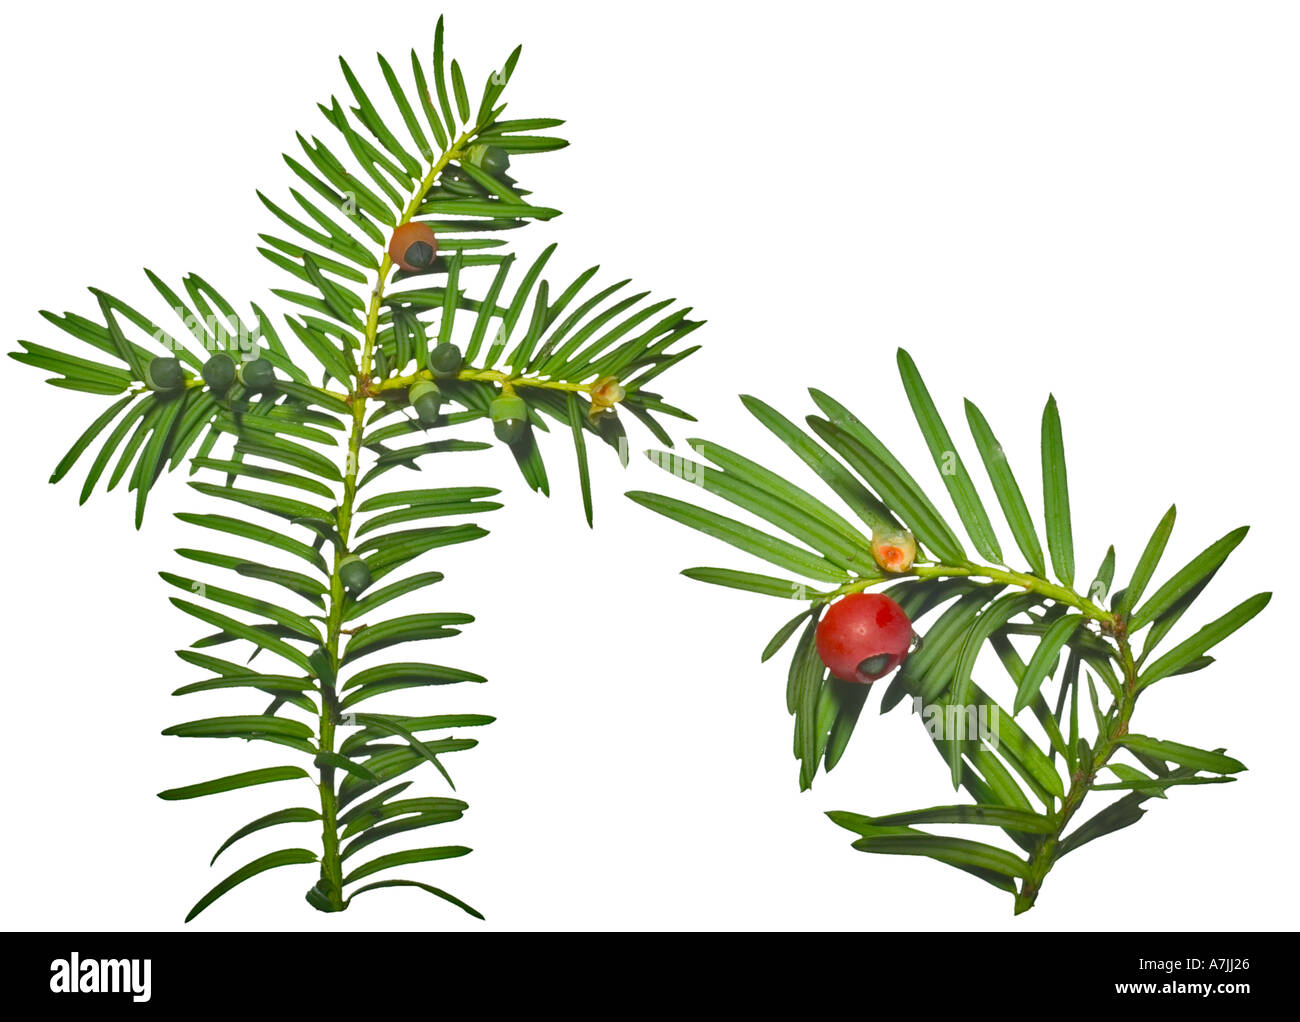 YEW Taxus baccata Leaves Berry Surrey England Poisonous leaves berries - Stock Image